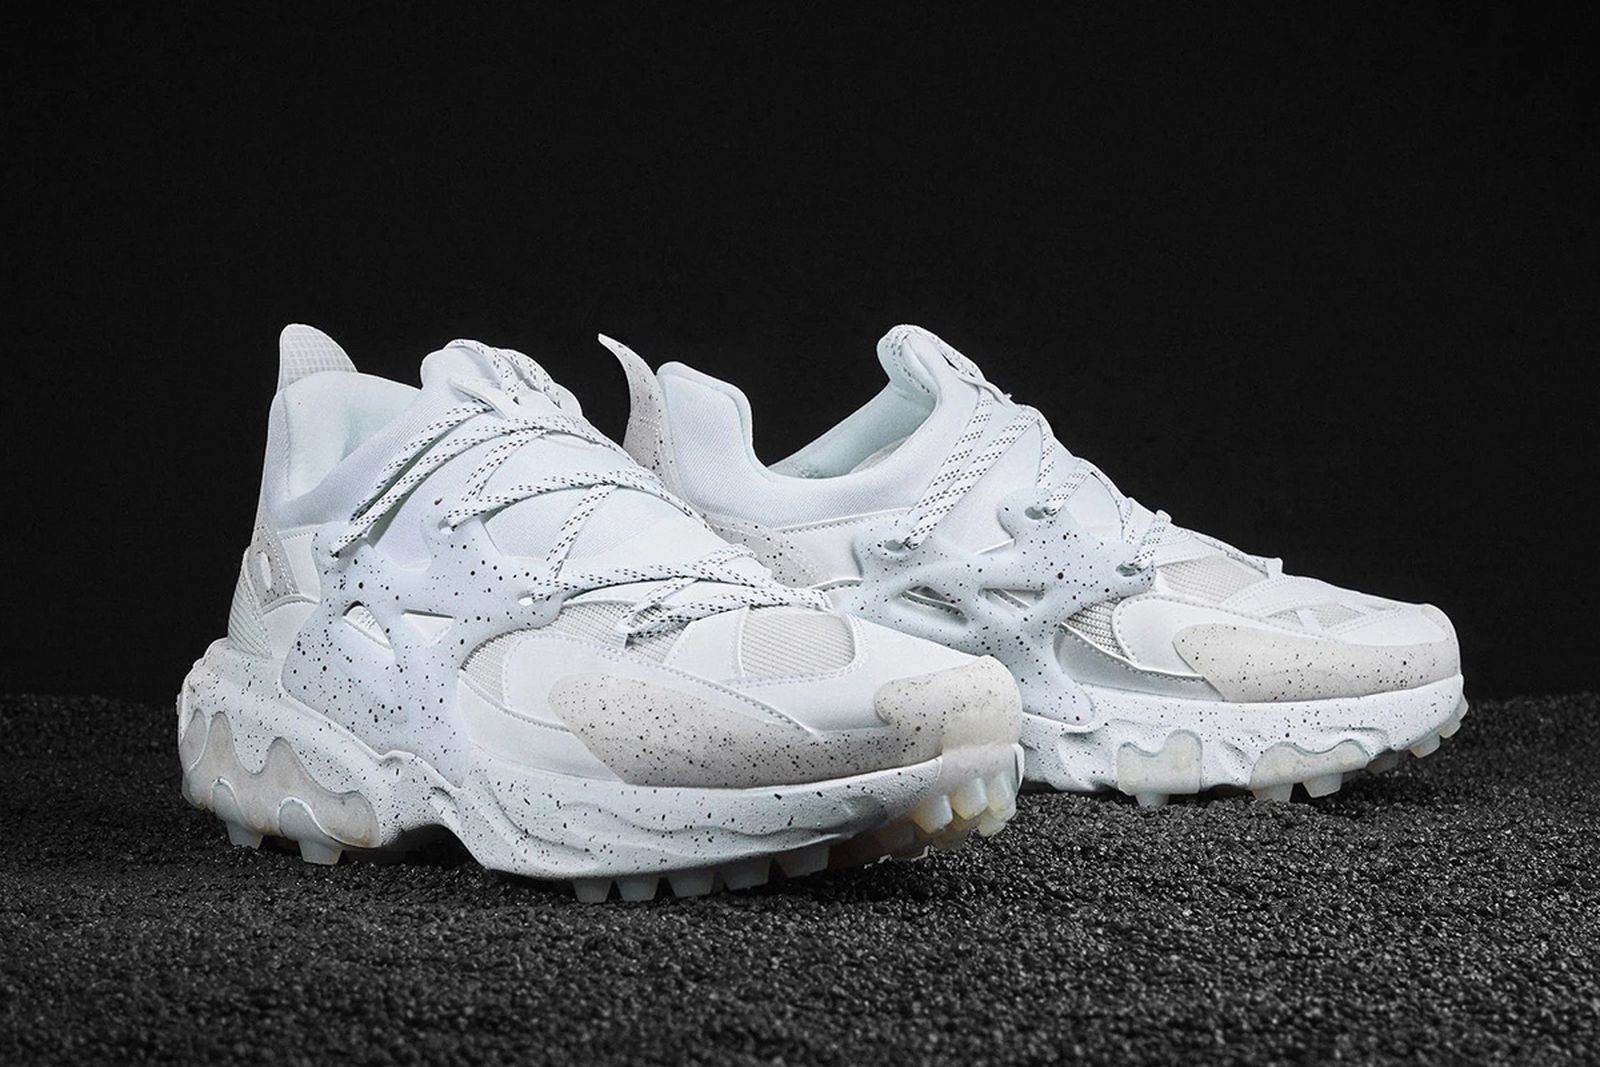 los chasquido disfraz  UNDERCOVER x Nike React Presto: Official Images & Where to Buy